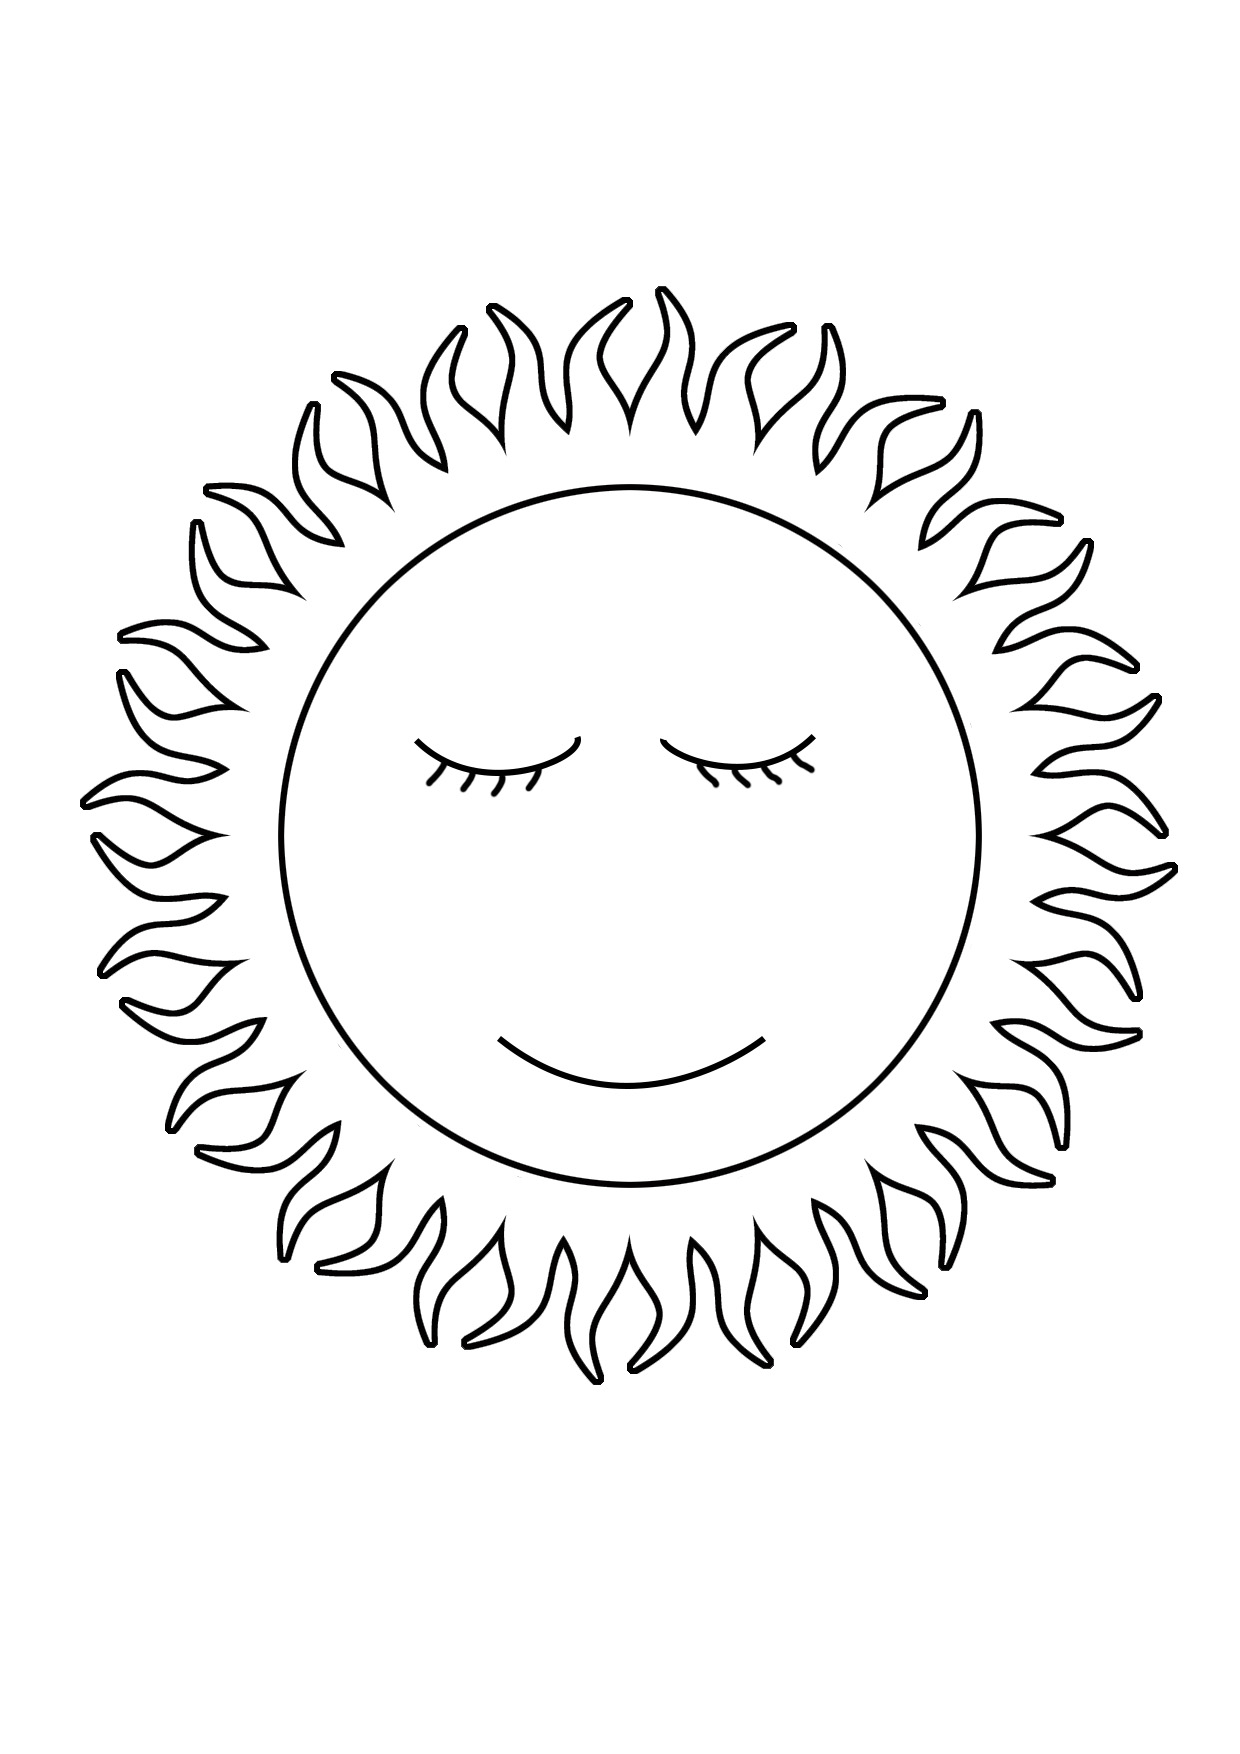 coloring sun free printable sun coloring pages for kids coloring sun 1 3